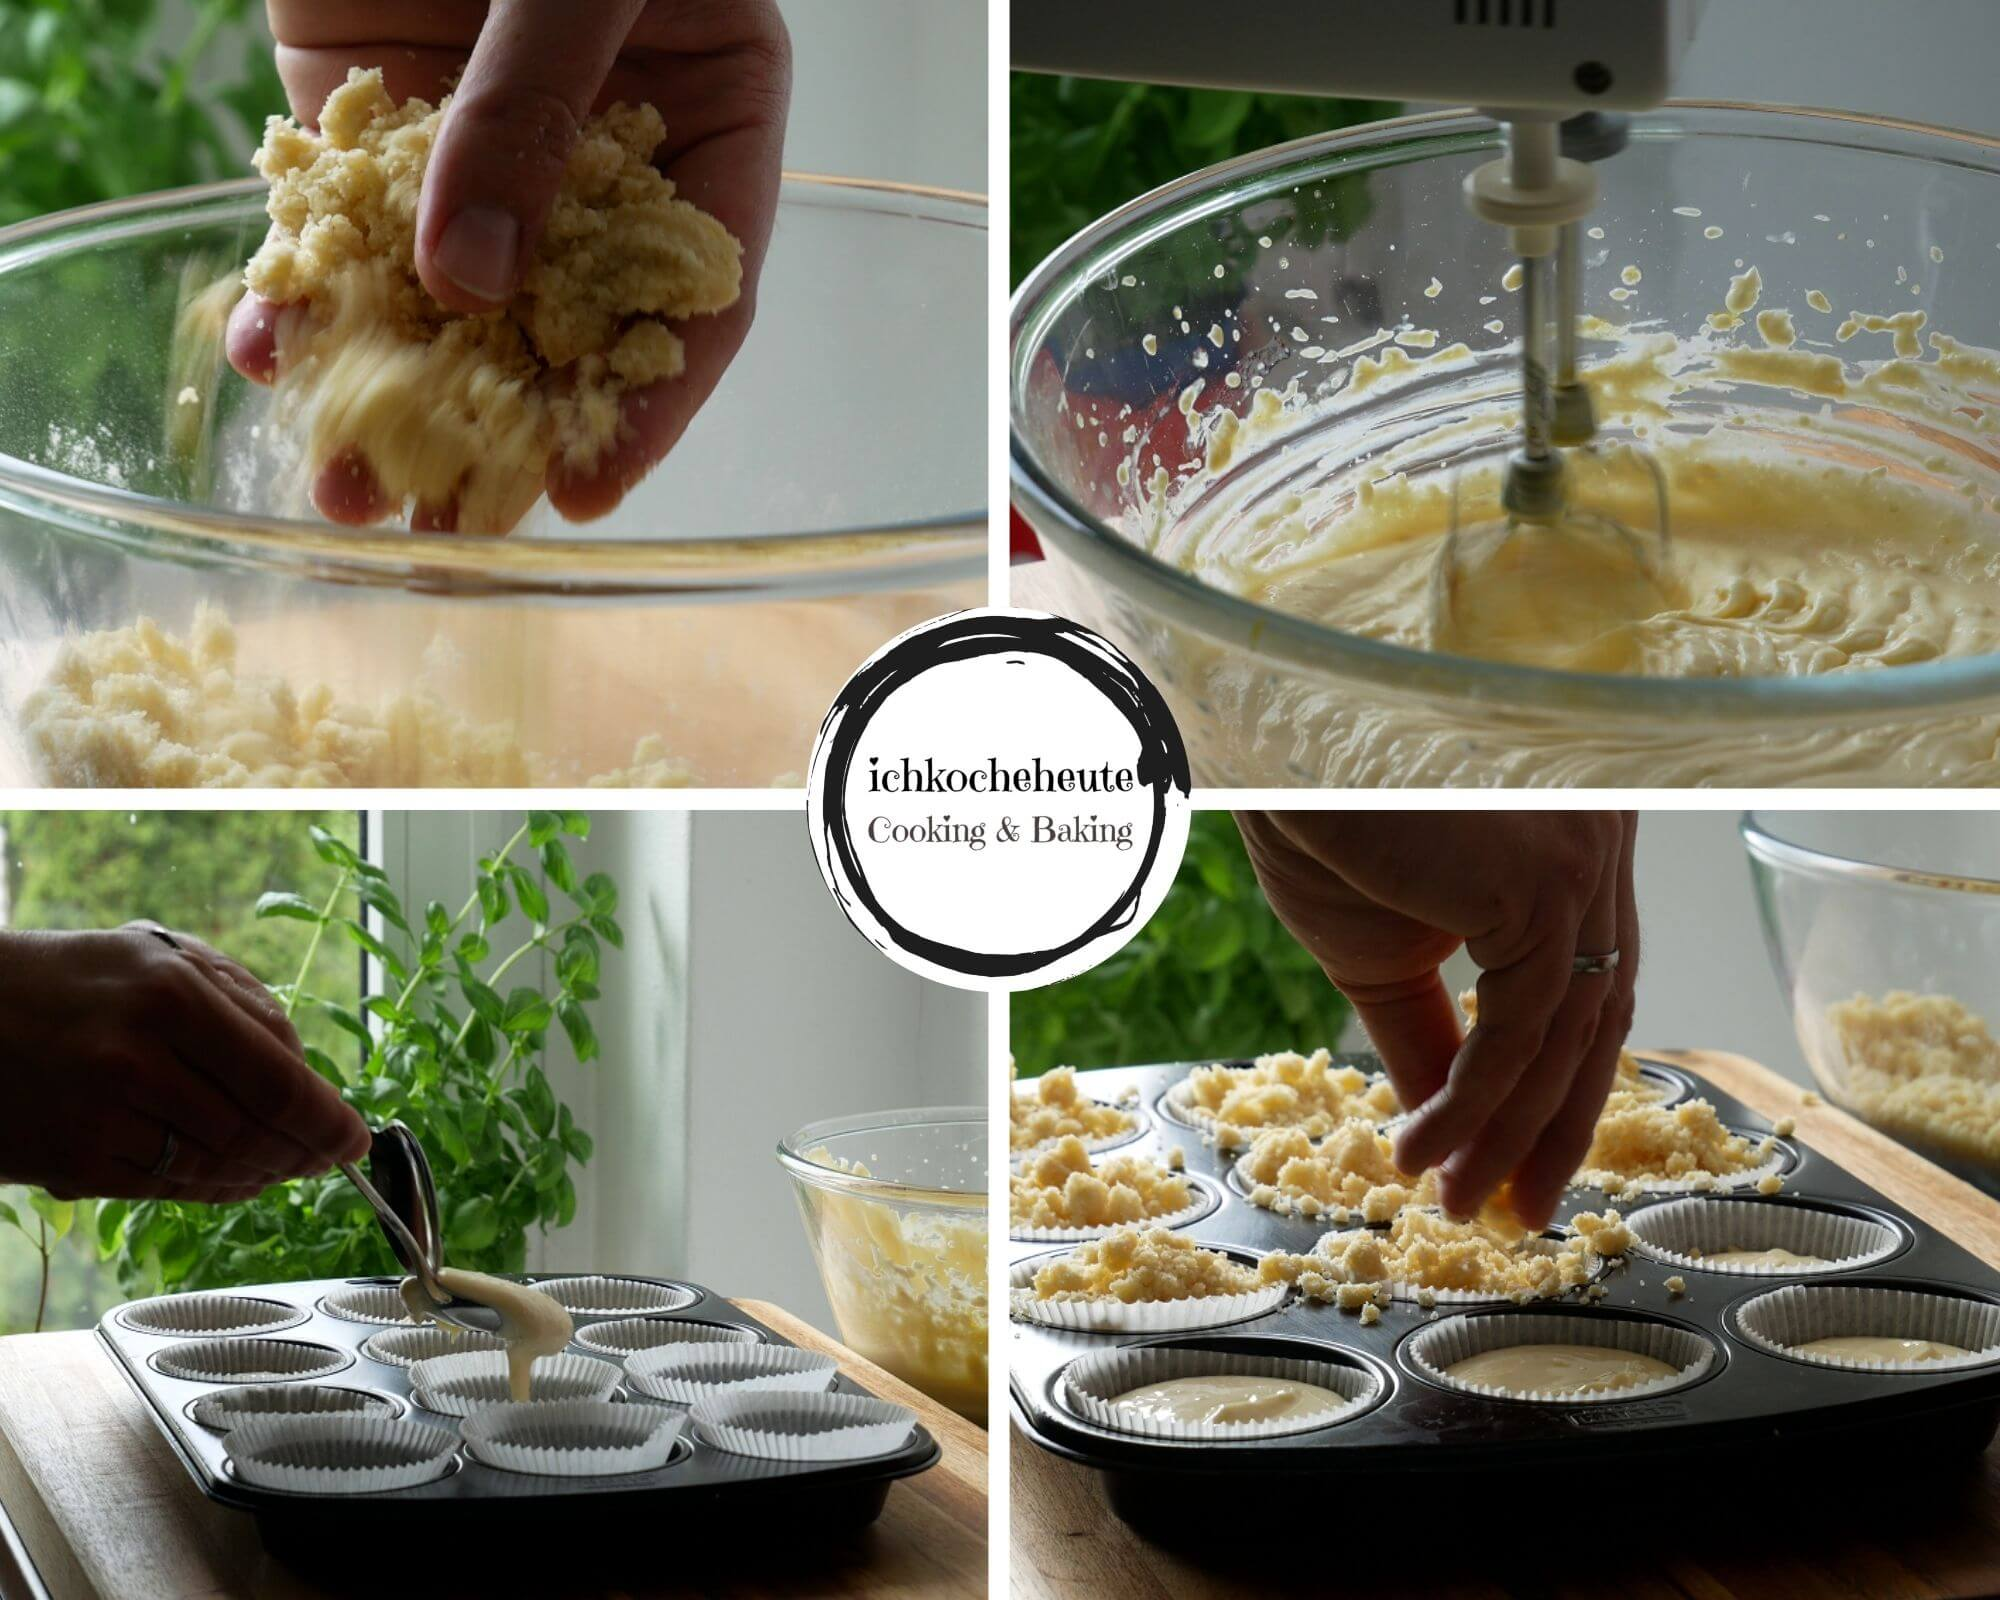 Preparations for Cheesecake Streusel Muffins